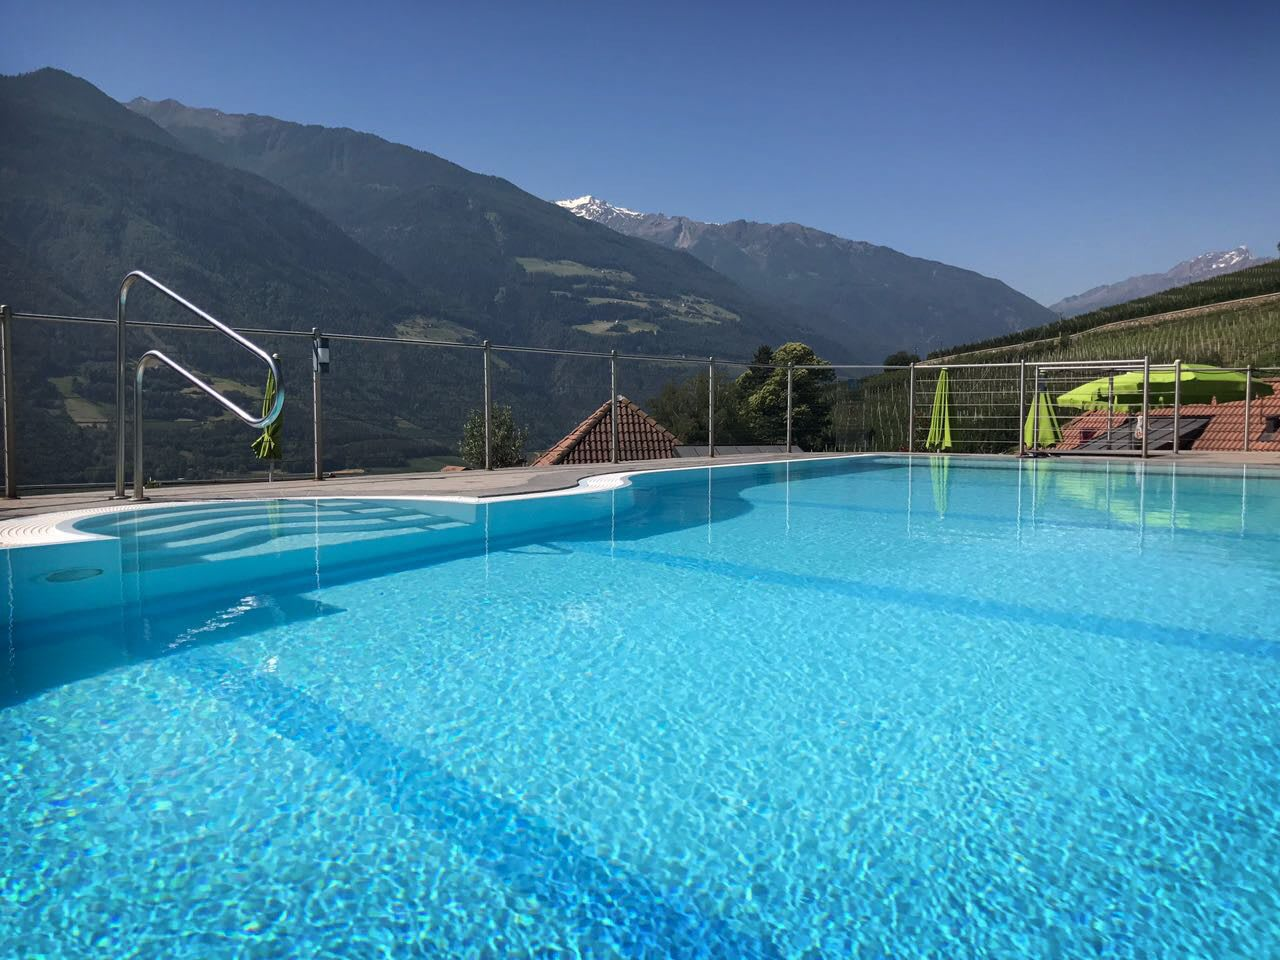 pool with mountain view active holidays relaxing unwinding